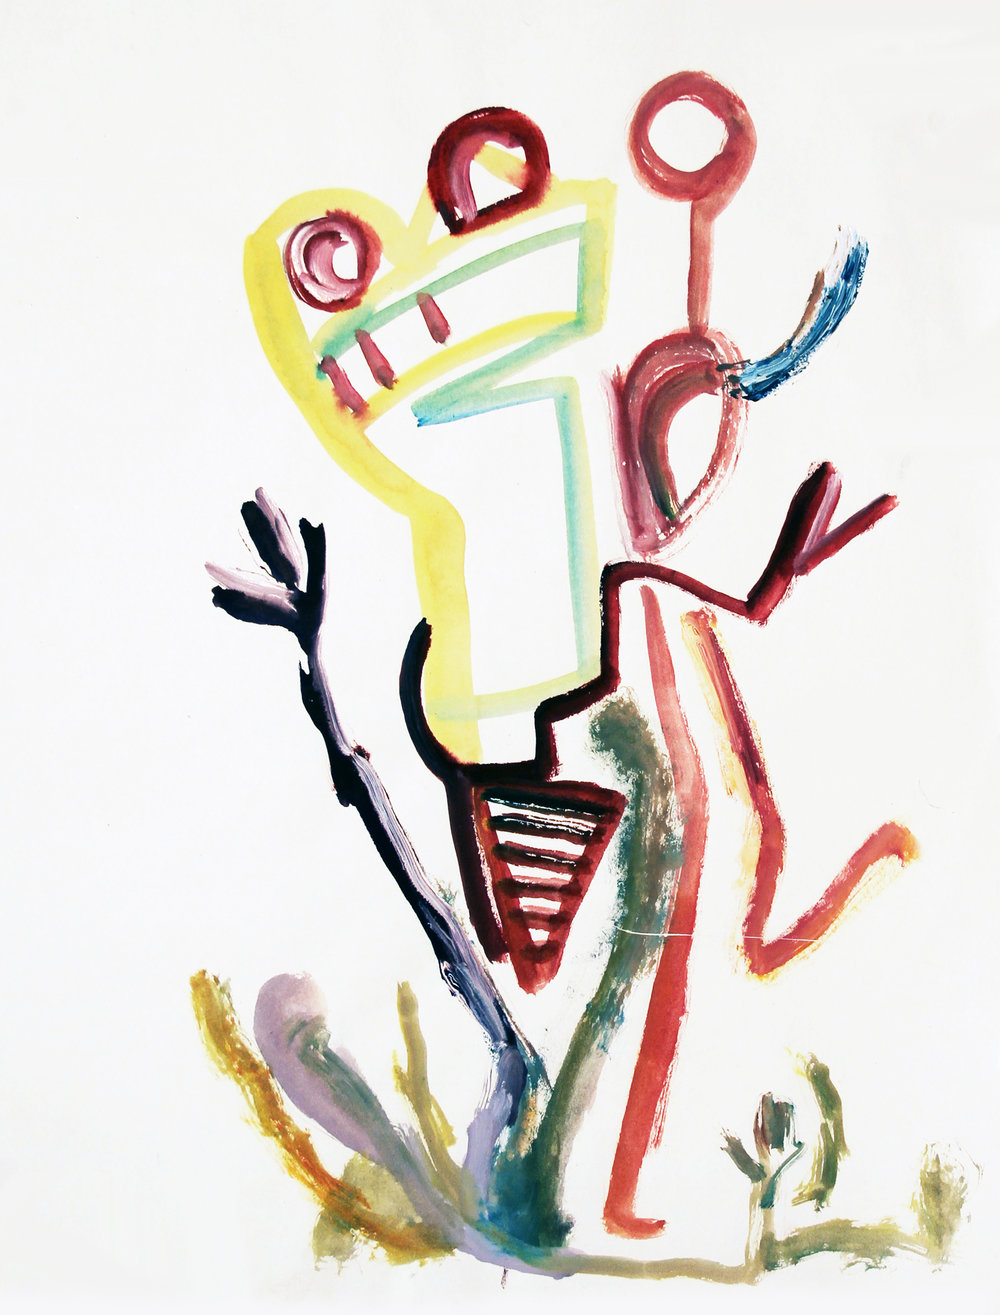 LEAP YEAR Watercolor on Paper 18 x 13 inches (46 x 33 cm)